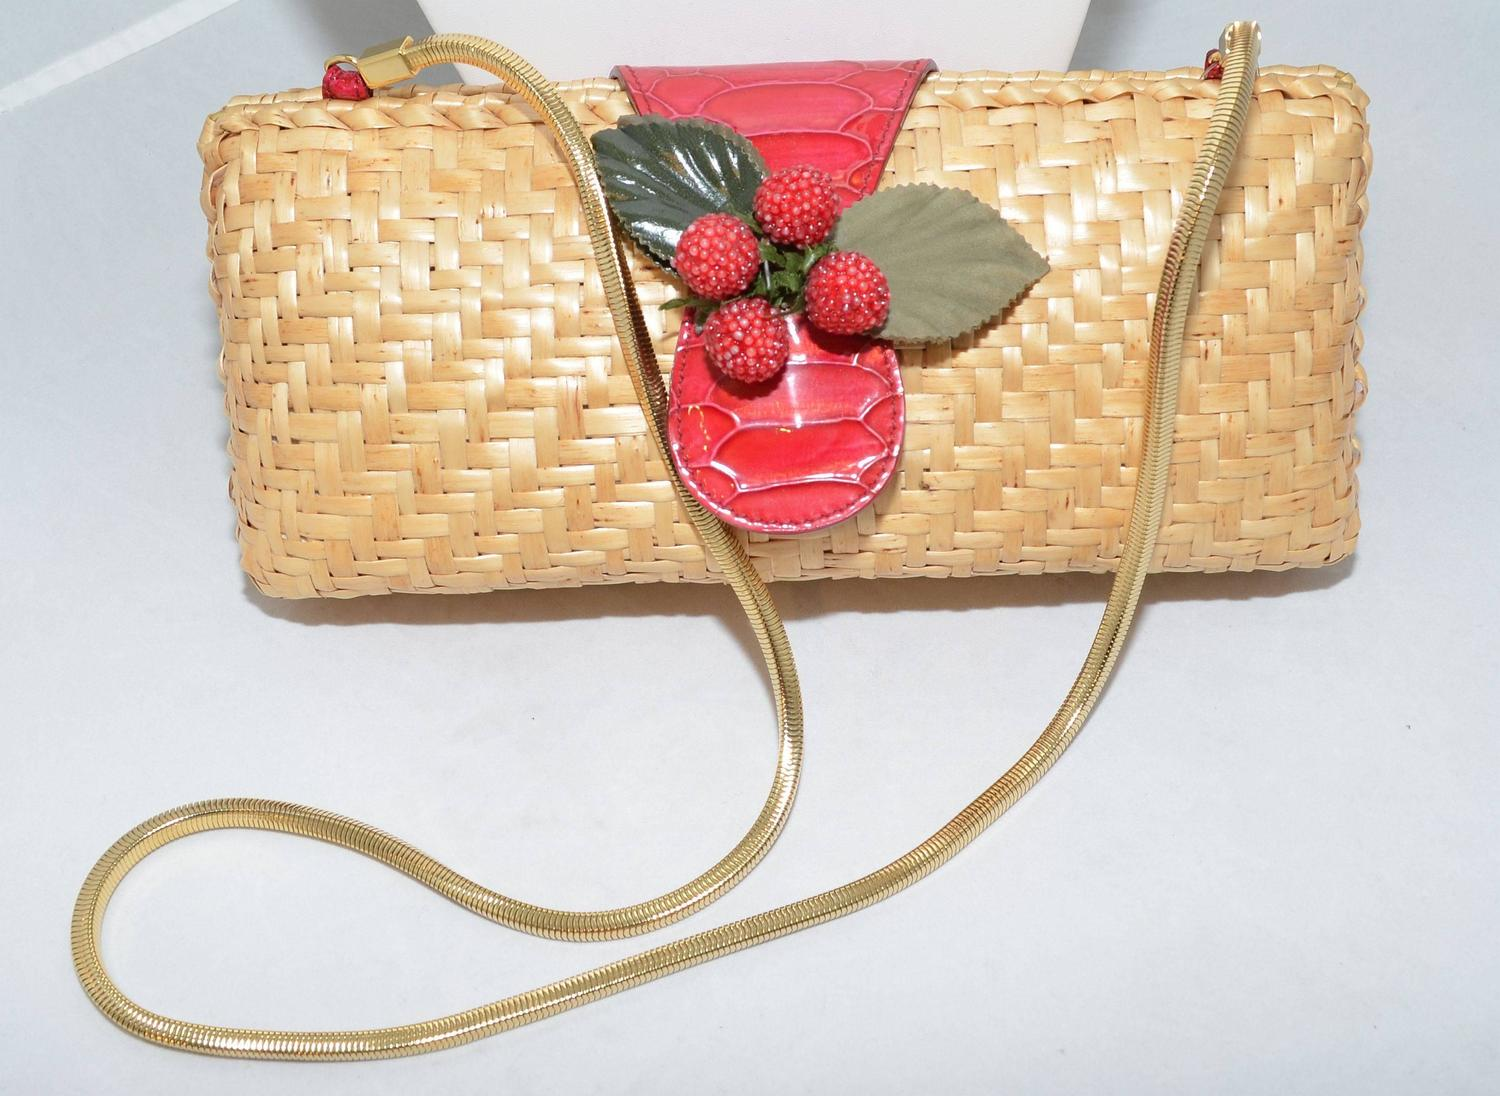 Buy handbags online at Macy's and get FREE SHIPPING with $99 purchase! Shop great selection of Macy's designer handbag brands and popular styles. Macy's Presents: The Edit- A curated mix of fashion and inspiration Check It Out. Betsey Johnson Straw Clutch.